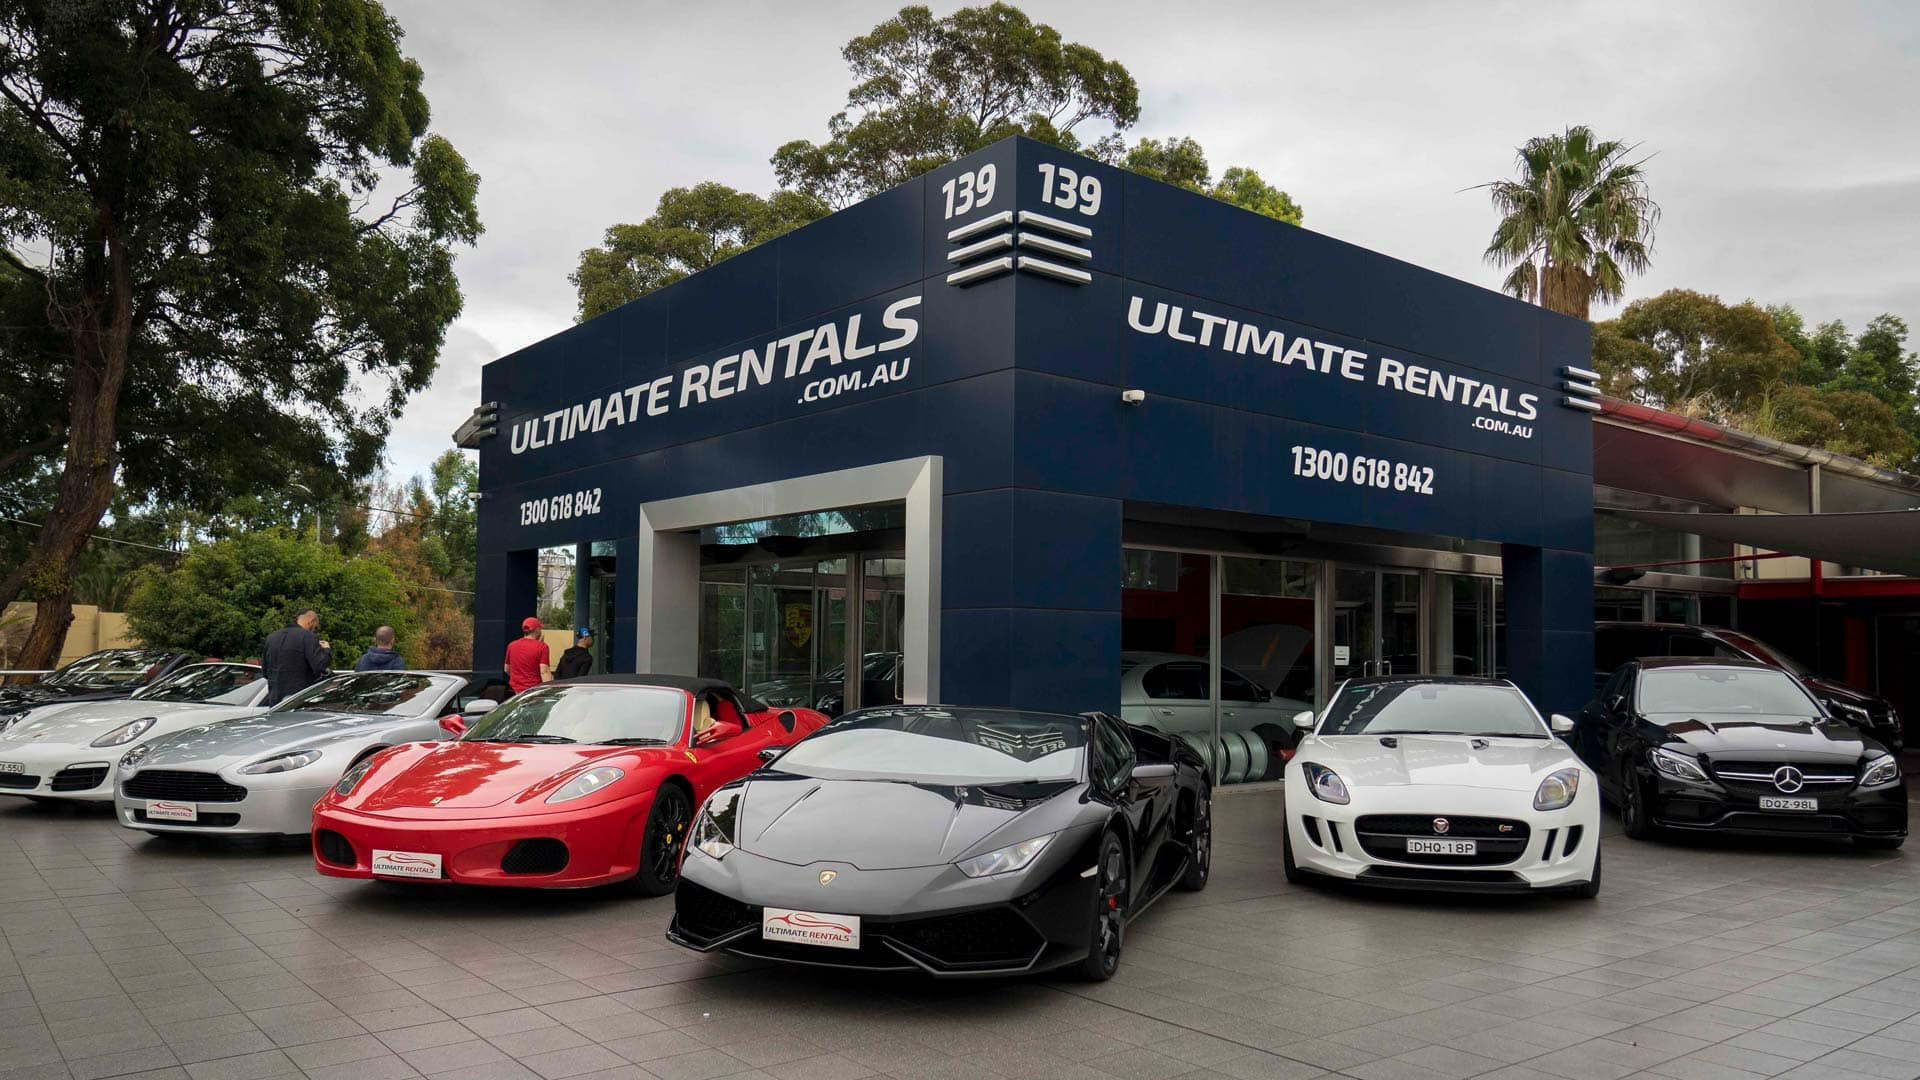 Ultimate Rentals Australia Has The Best Luxury Cars For Hire